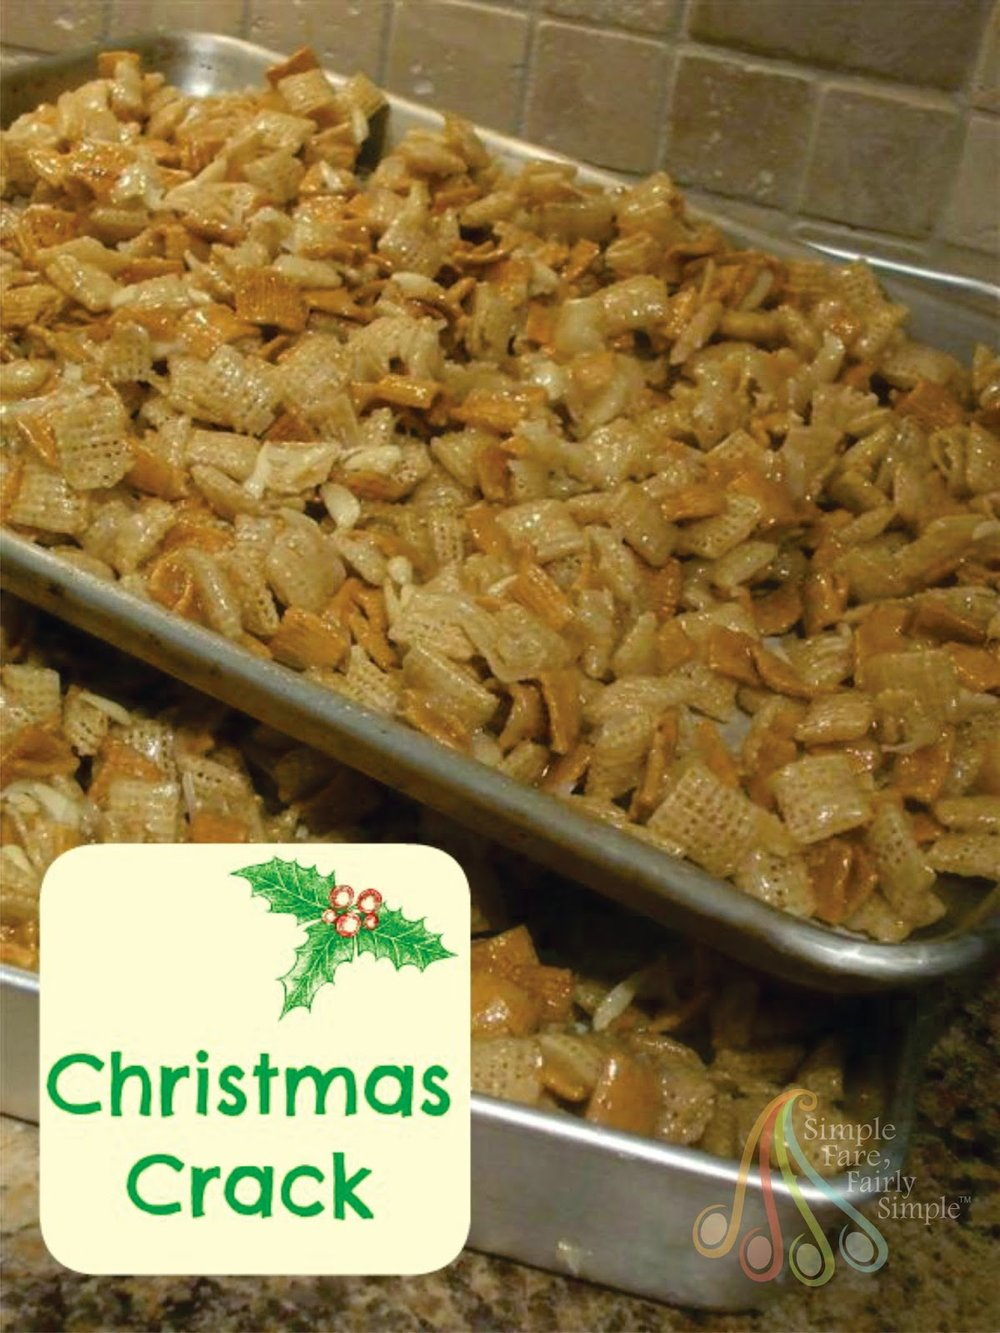 Christmas Crack from Simple Fare, Fairly Simple